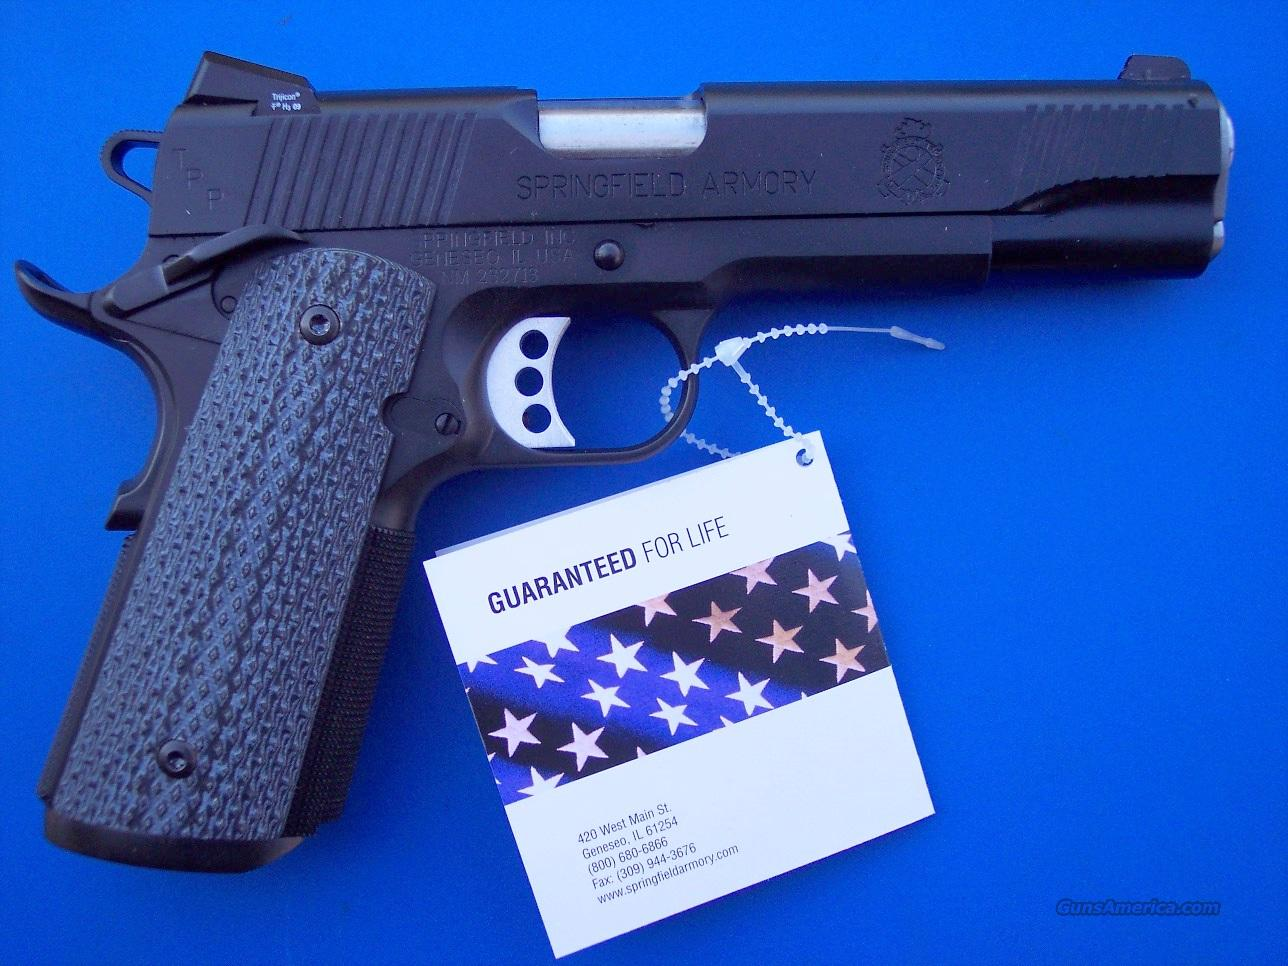 Springfield TRP Tactical 1911 .45 acp Armory Kote Tactical Response Pistol PC9108L *NEW* PLUS - 4 Extra Mags, Holster and Mag Pouch  Guns > Pistols > Springfield Armory Pistols > 1911 Type